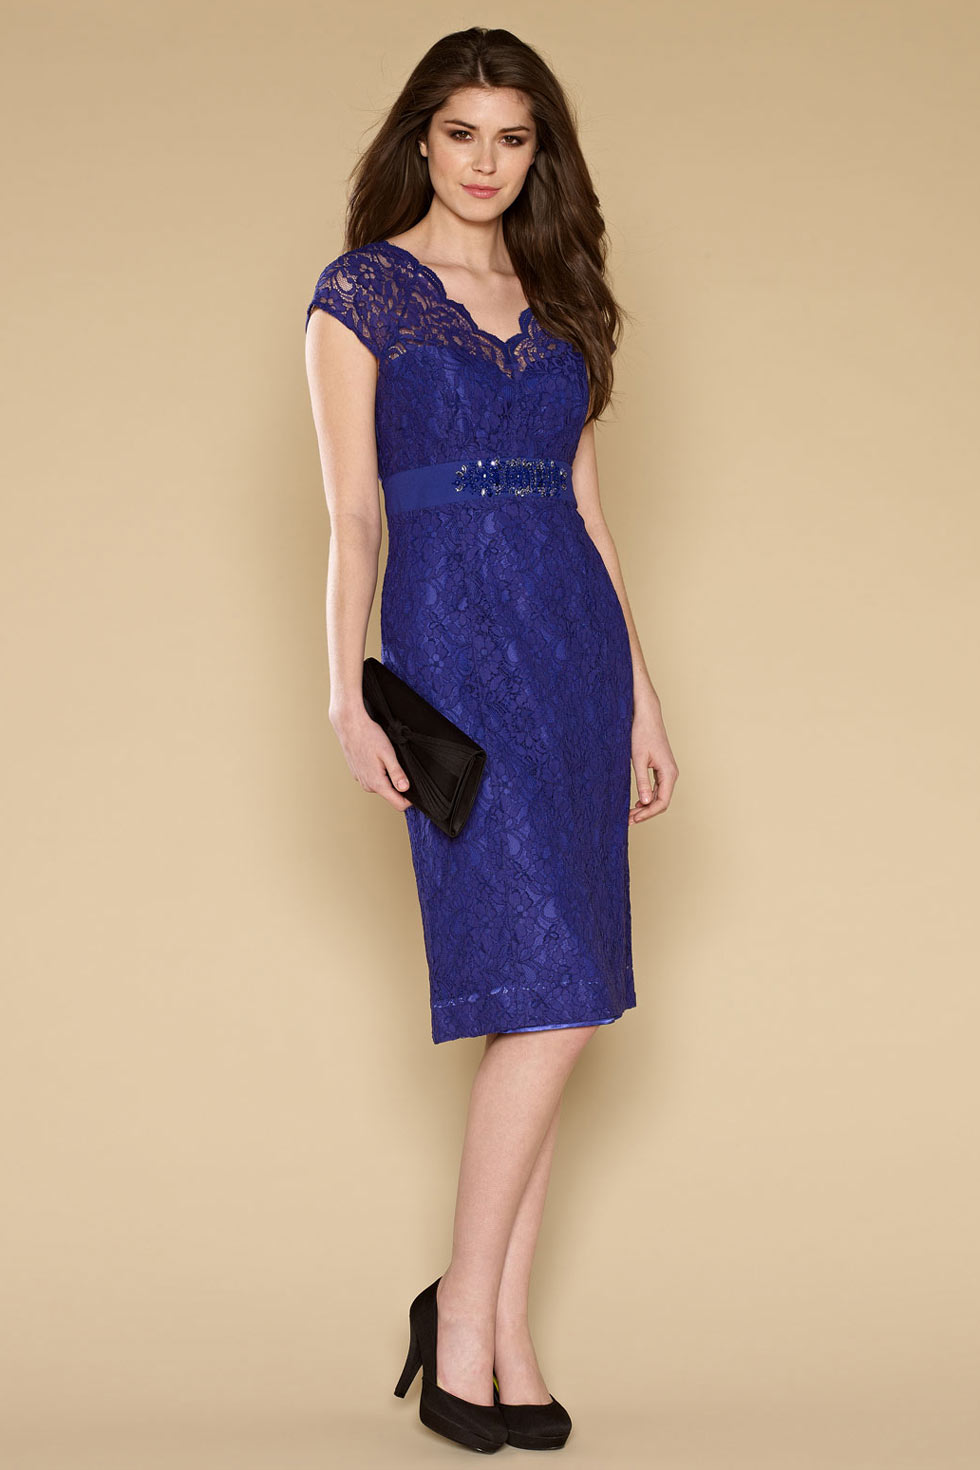 Plus Size Dresses For Wedding Guests Ireland 48